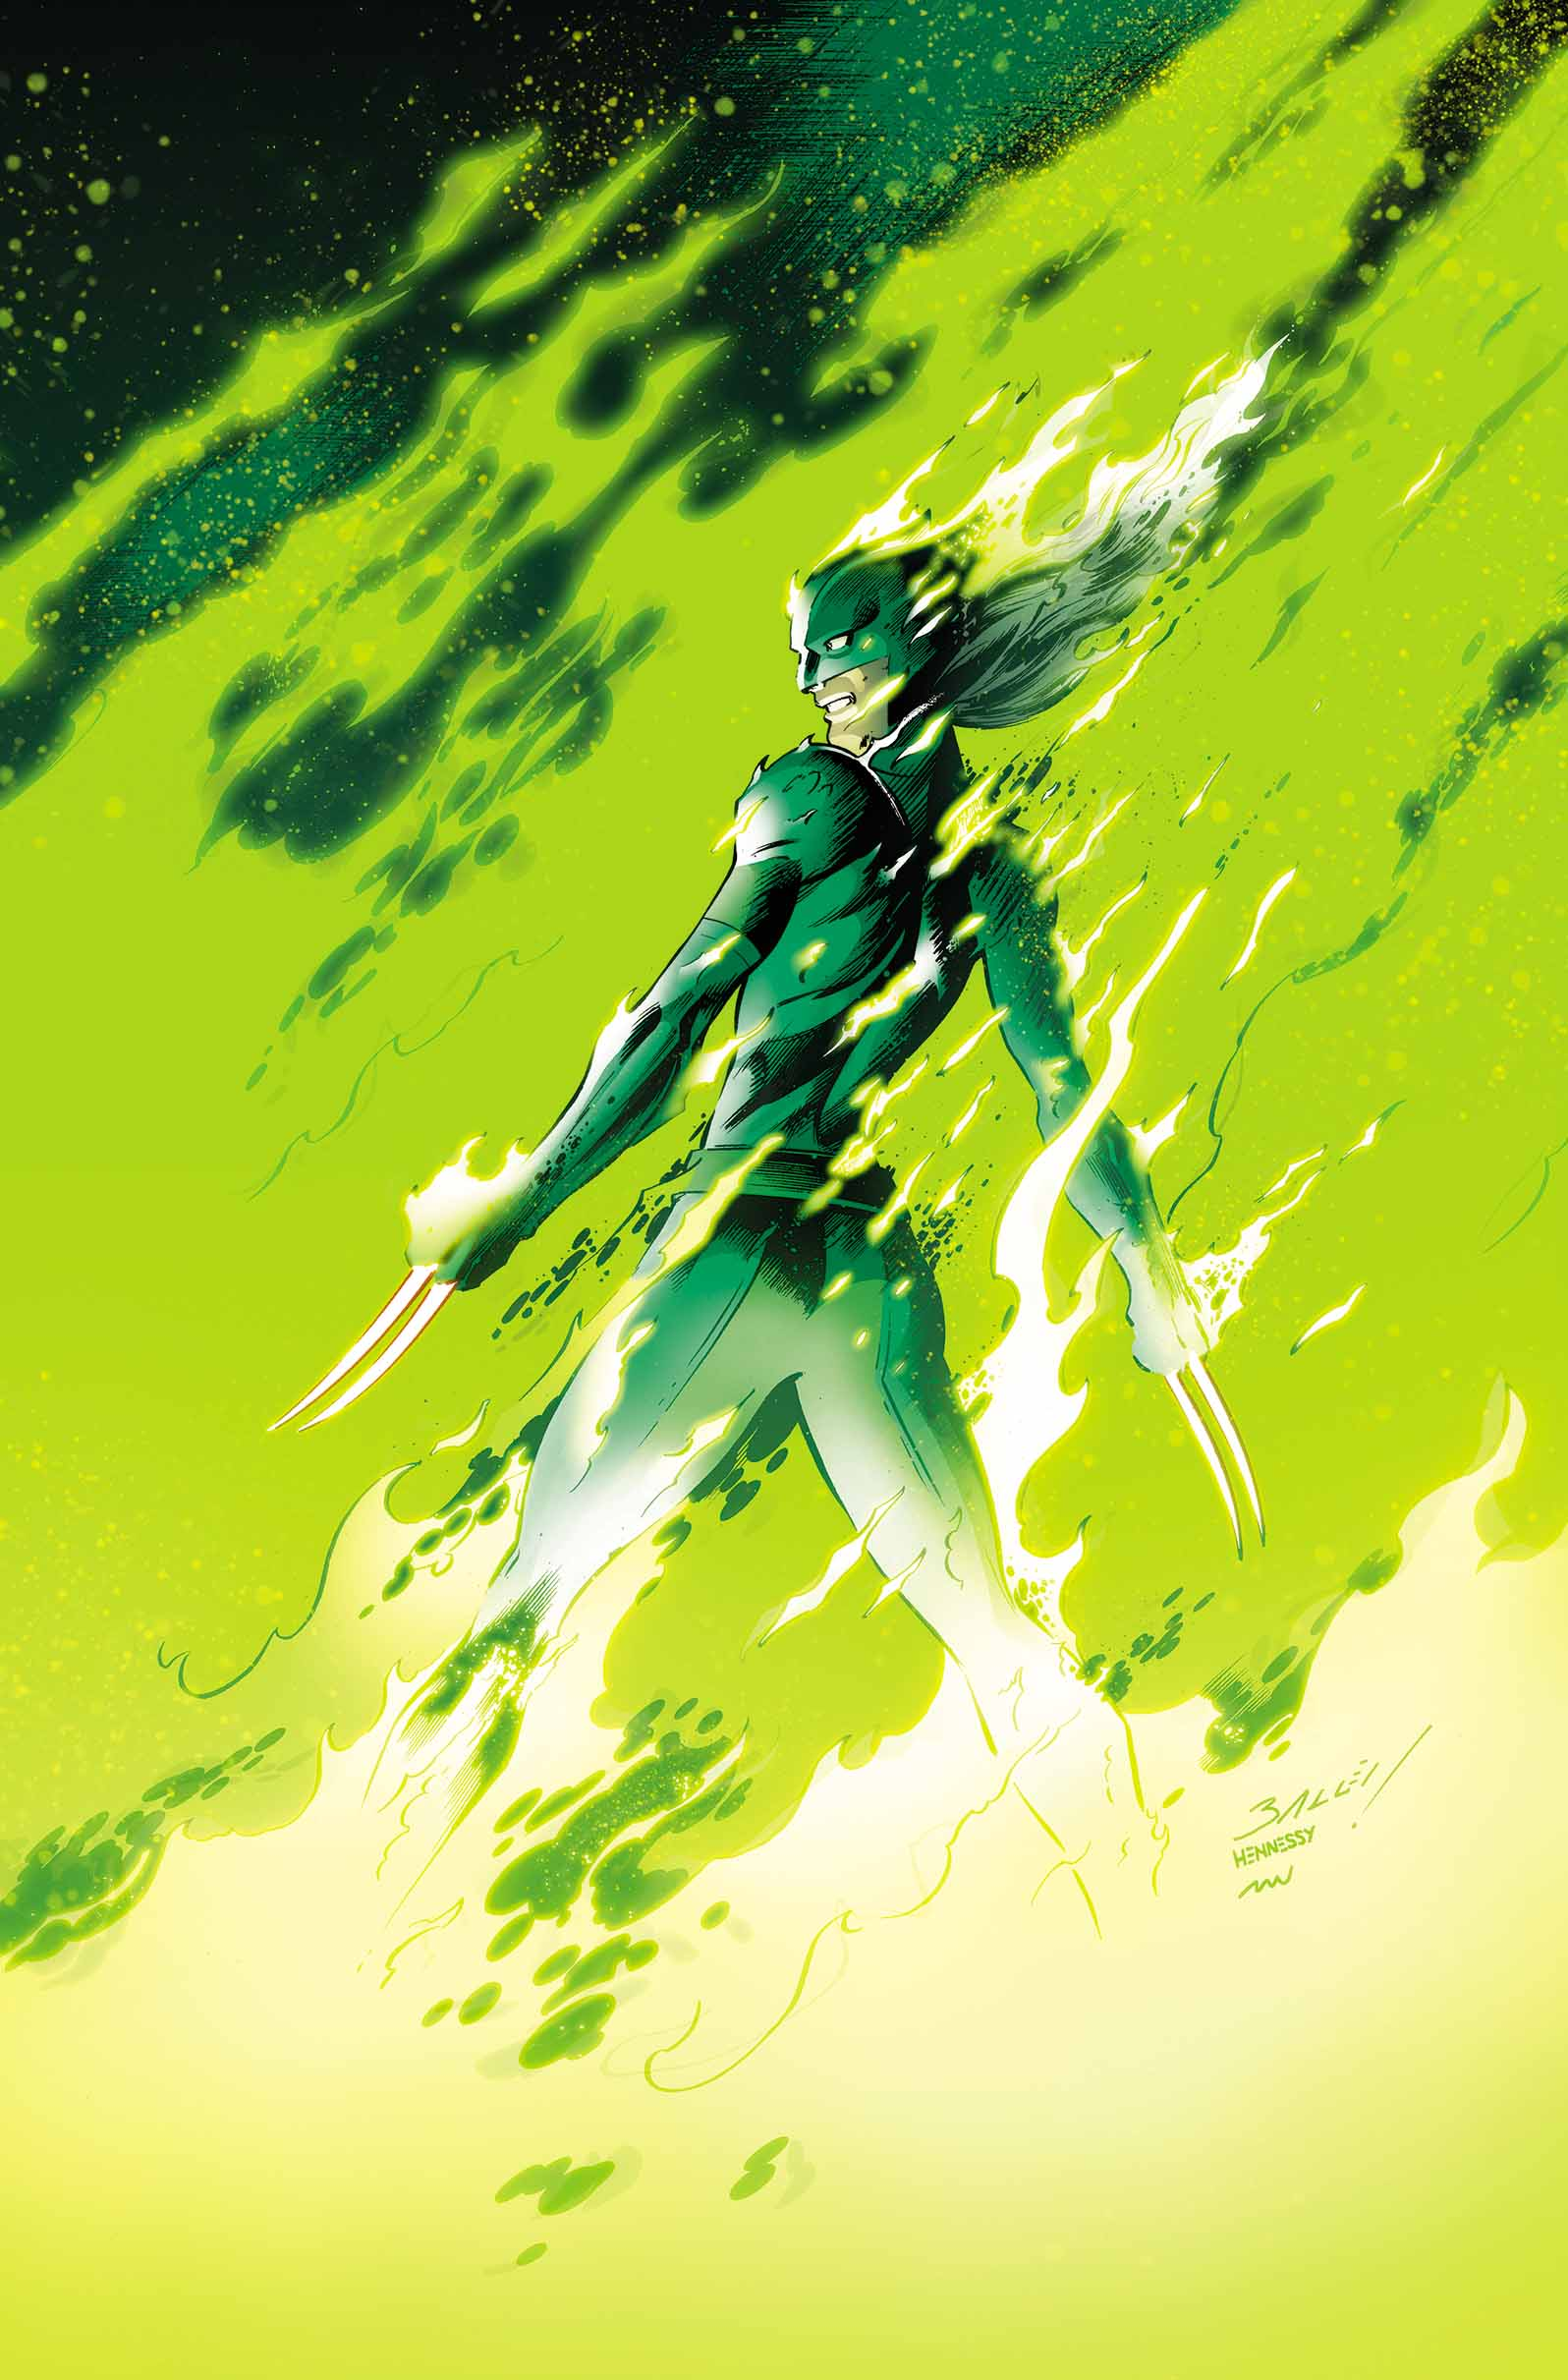 First Look at All-New X-Men #4